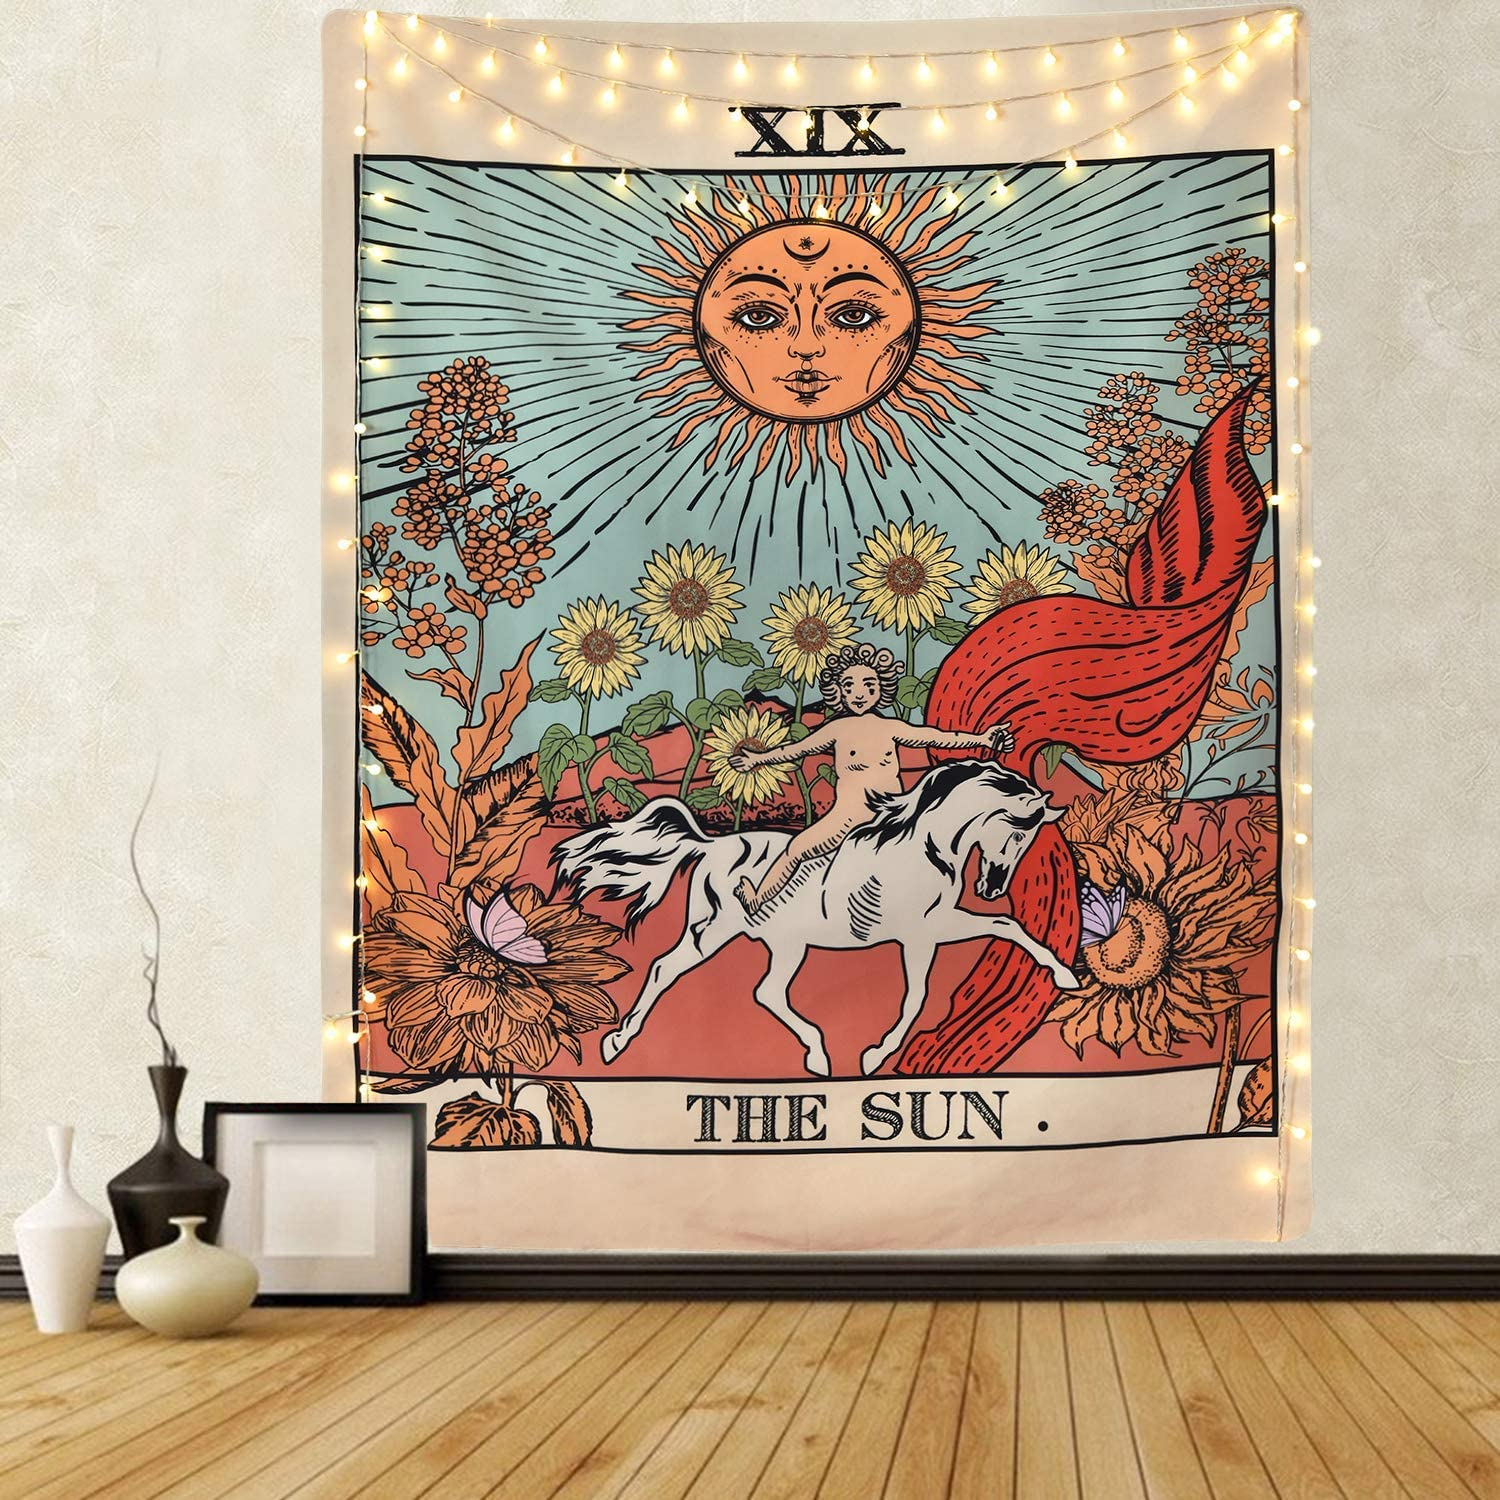 Popular HandicraftsTarot Tapestry The Sun Tapestry Medieval Europe Divination Tapestry Wall Hanging Tapestries Mysterious Wall Tapestry for Home Décor